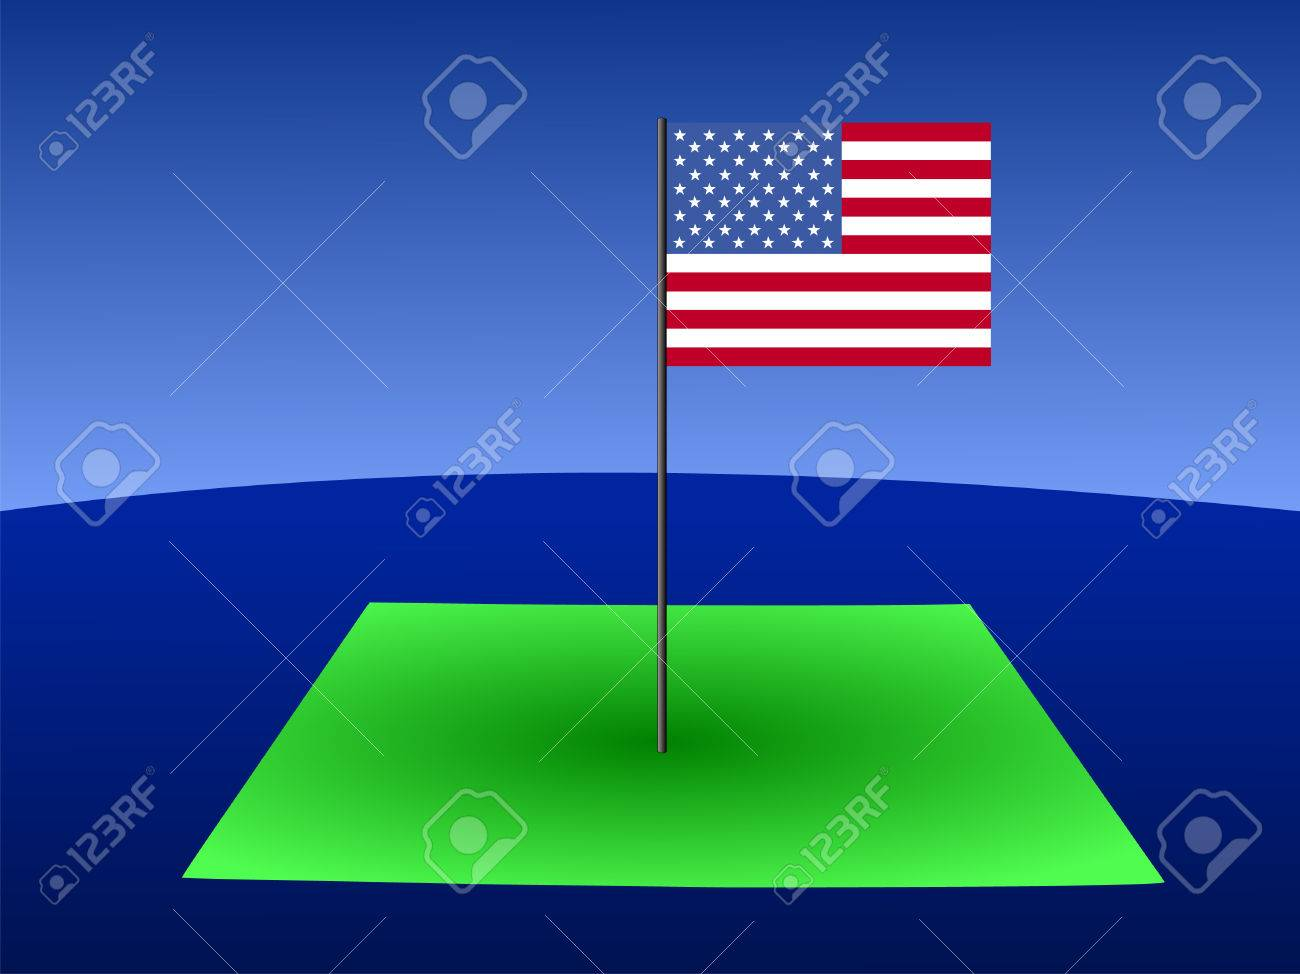 Map Of Colorado With American Flag On Pole Illustration Stock Photo